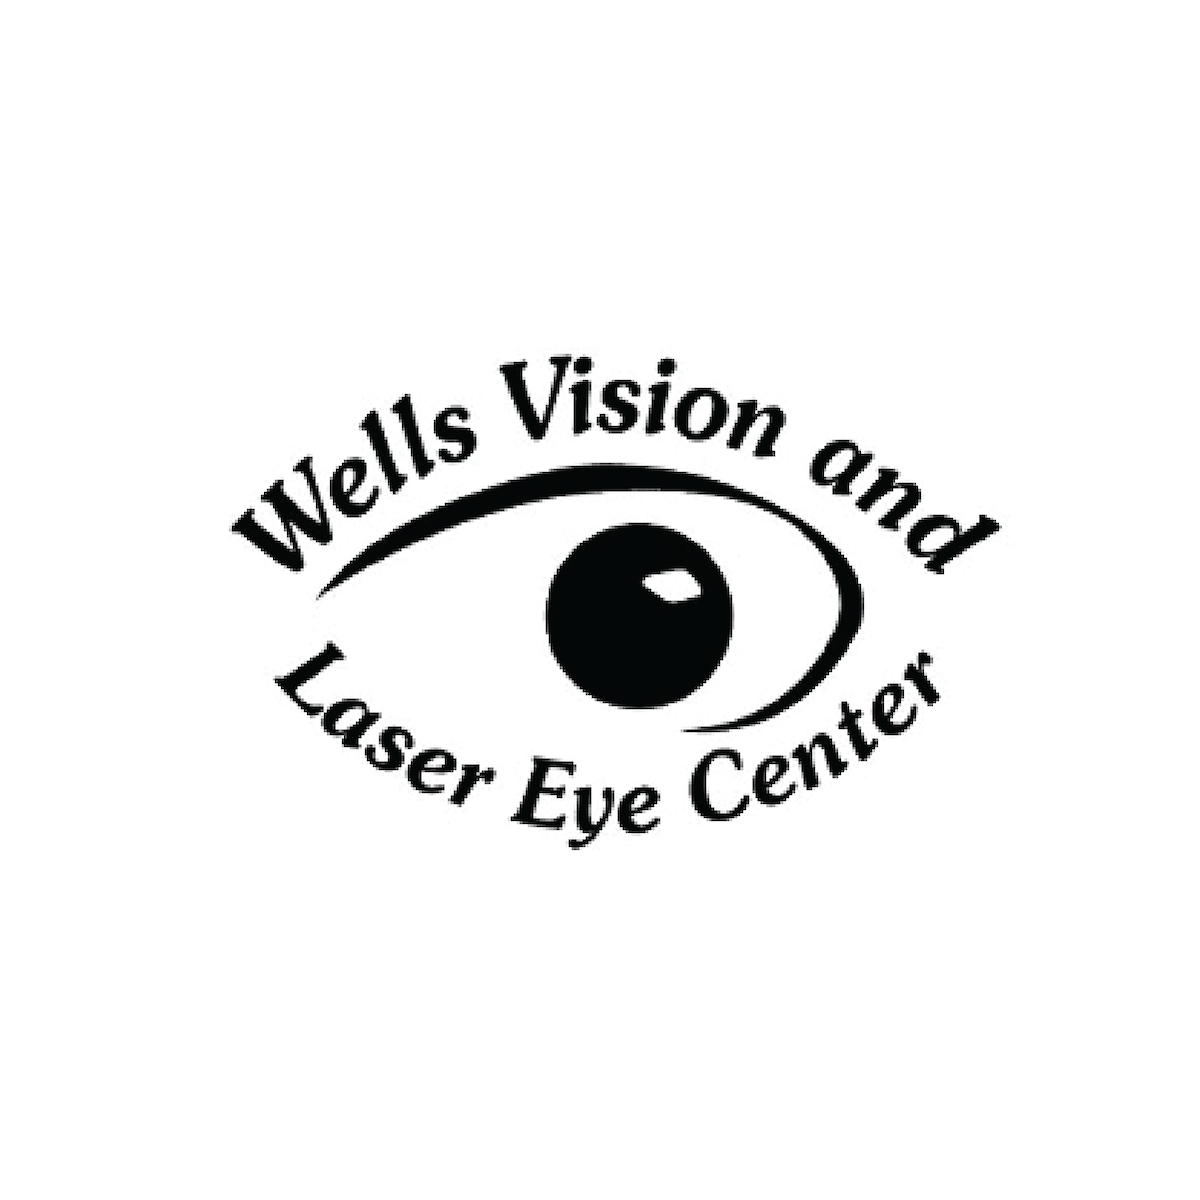 Wells Vision.png